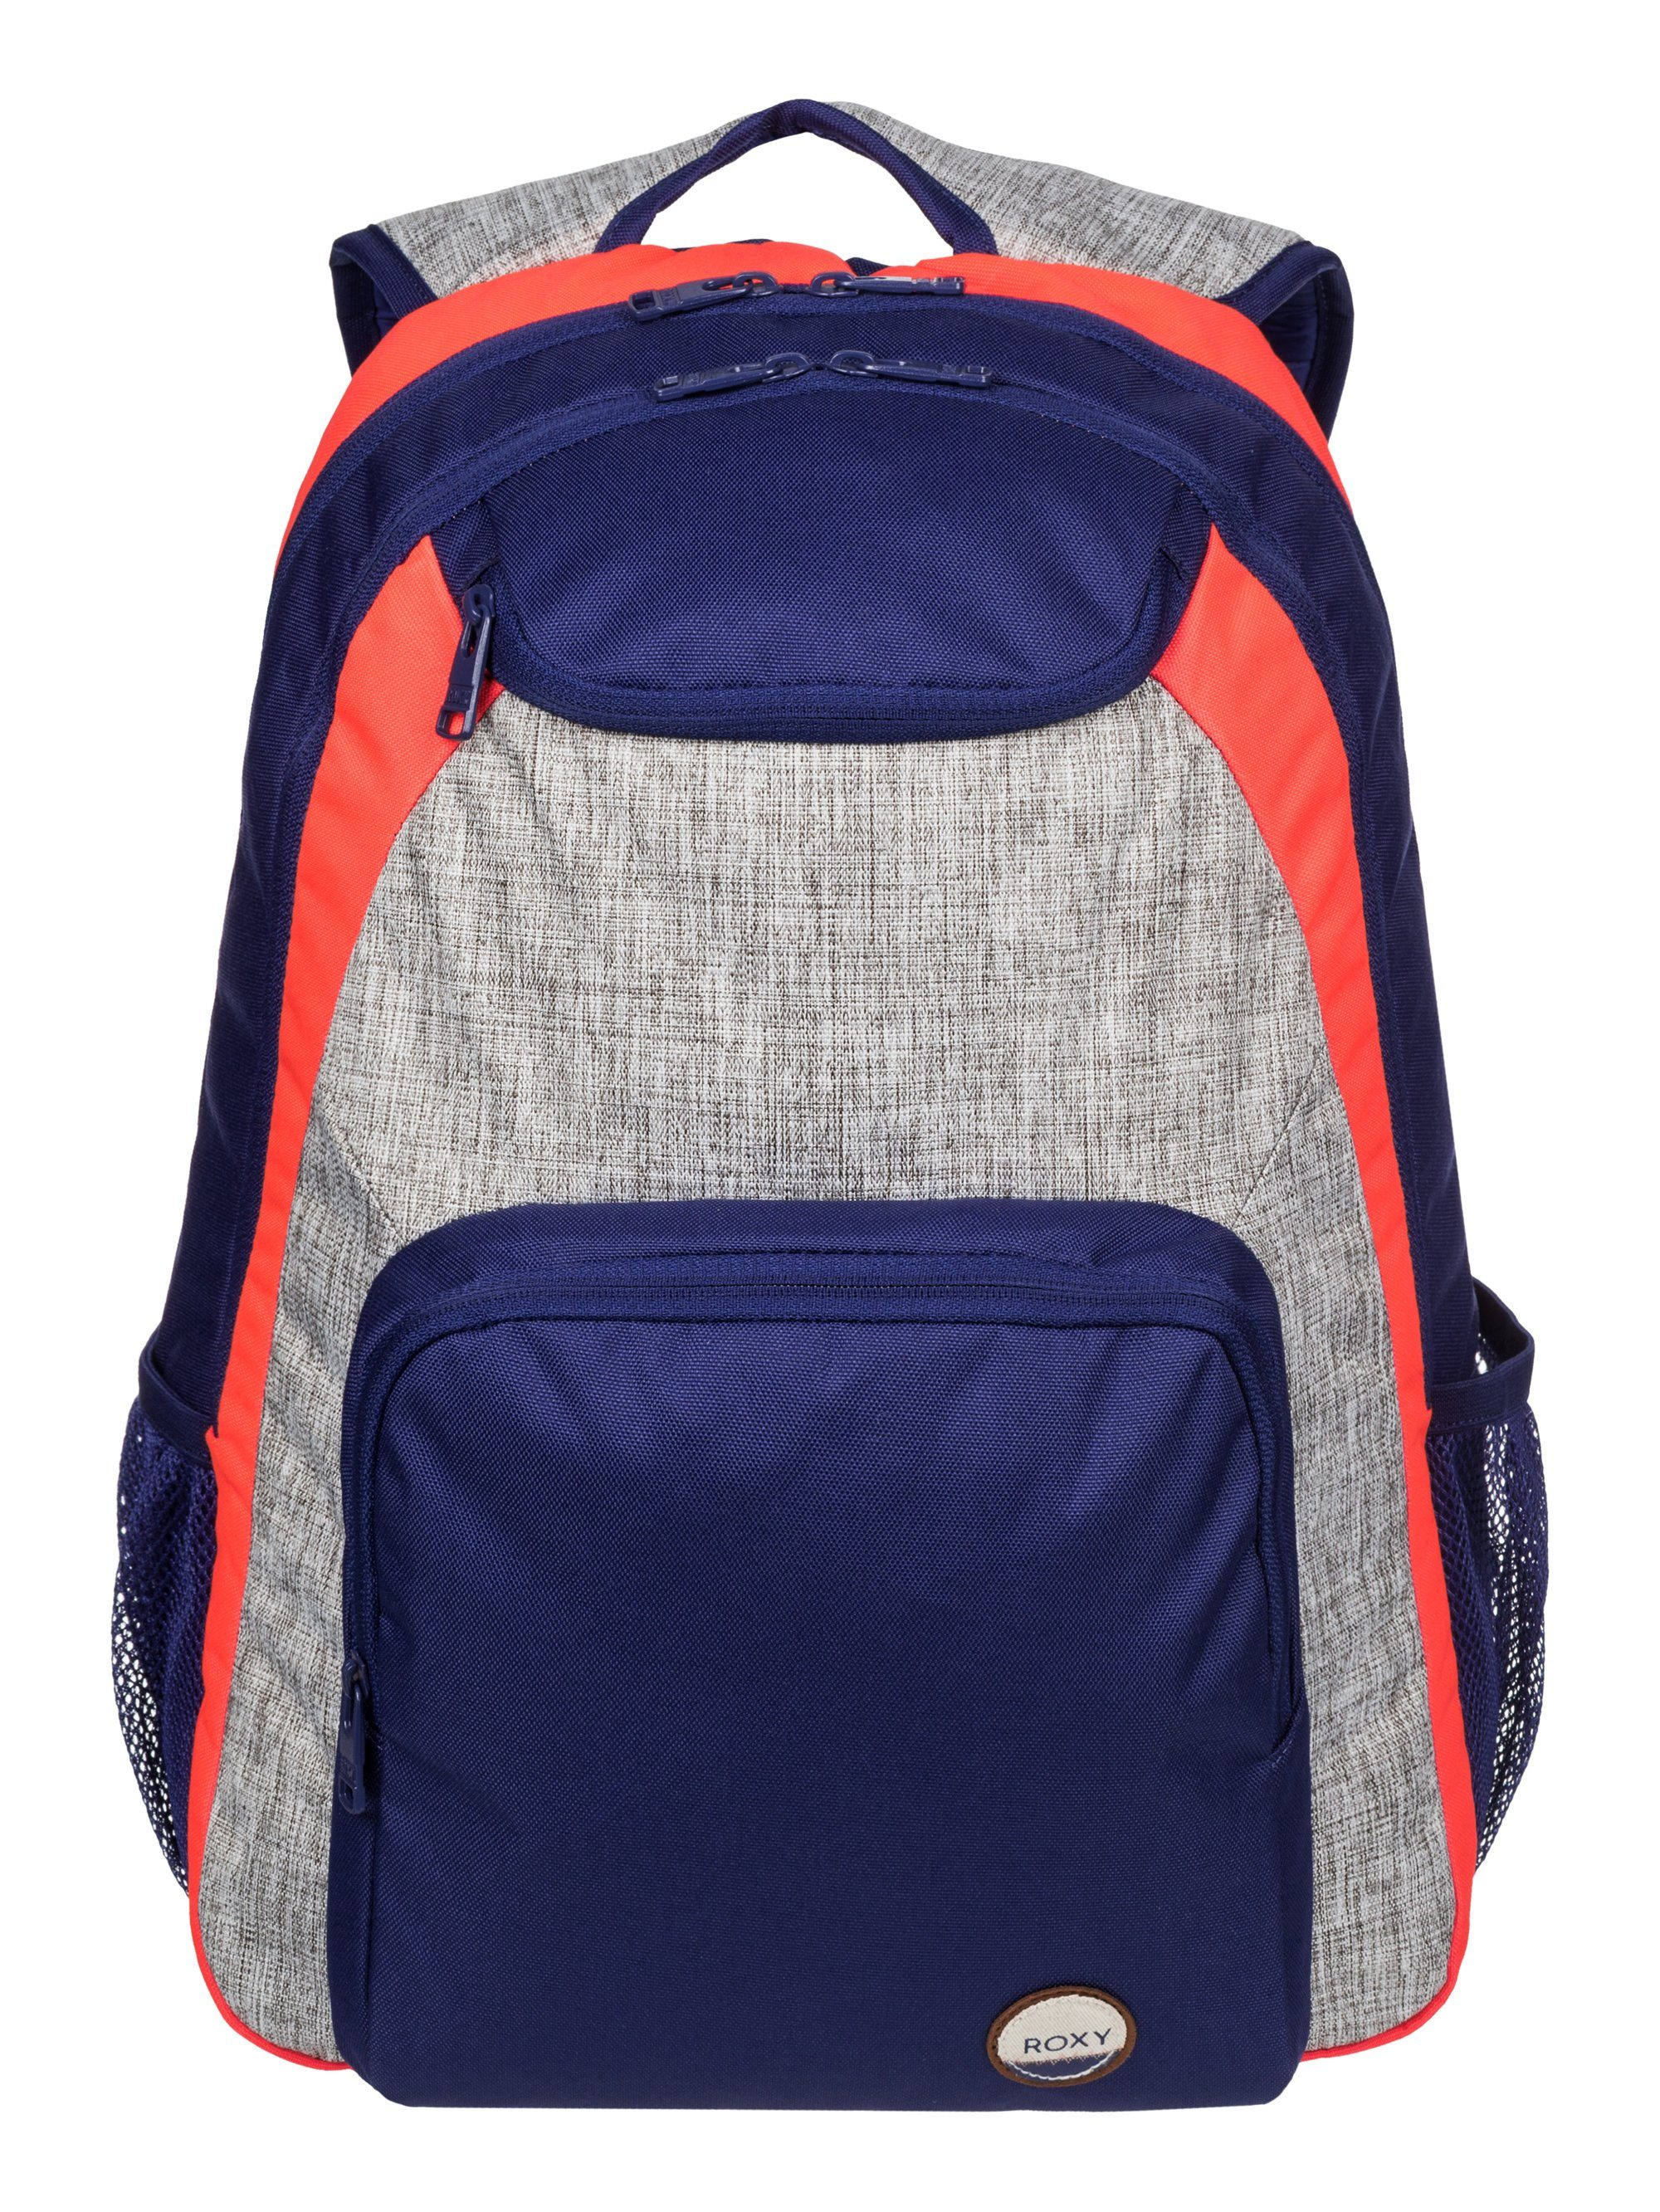 Roxy Rucksack »Shadow Swell Colorblock«